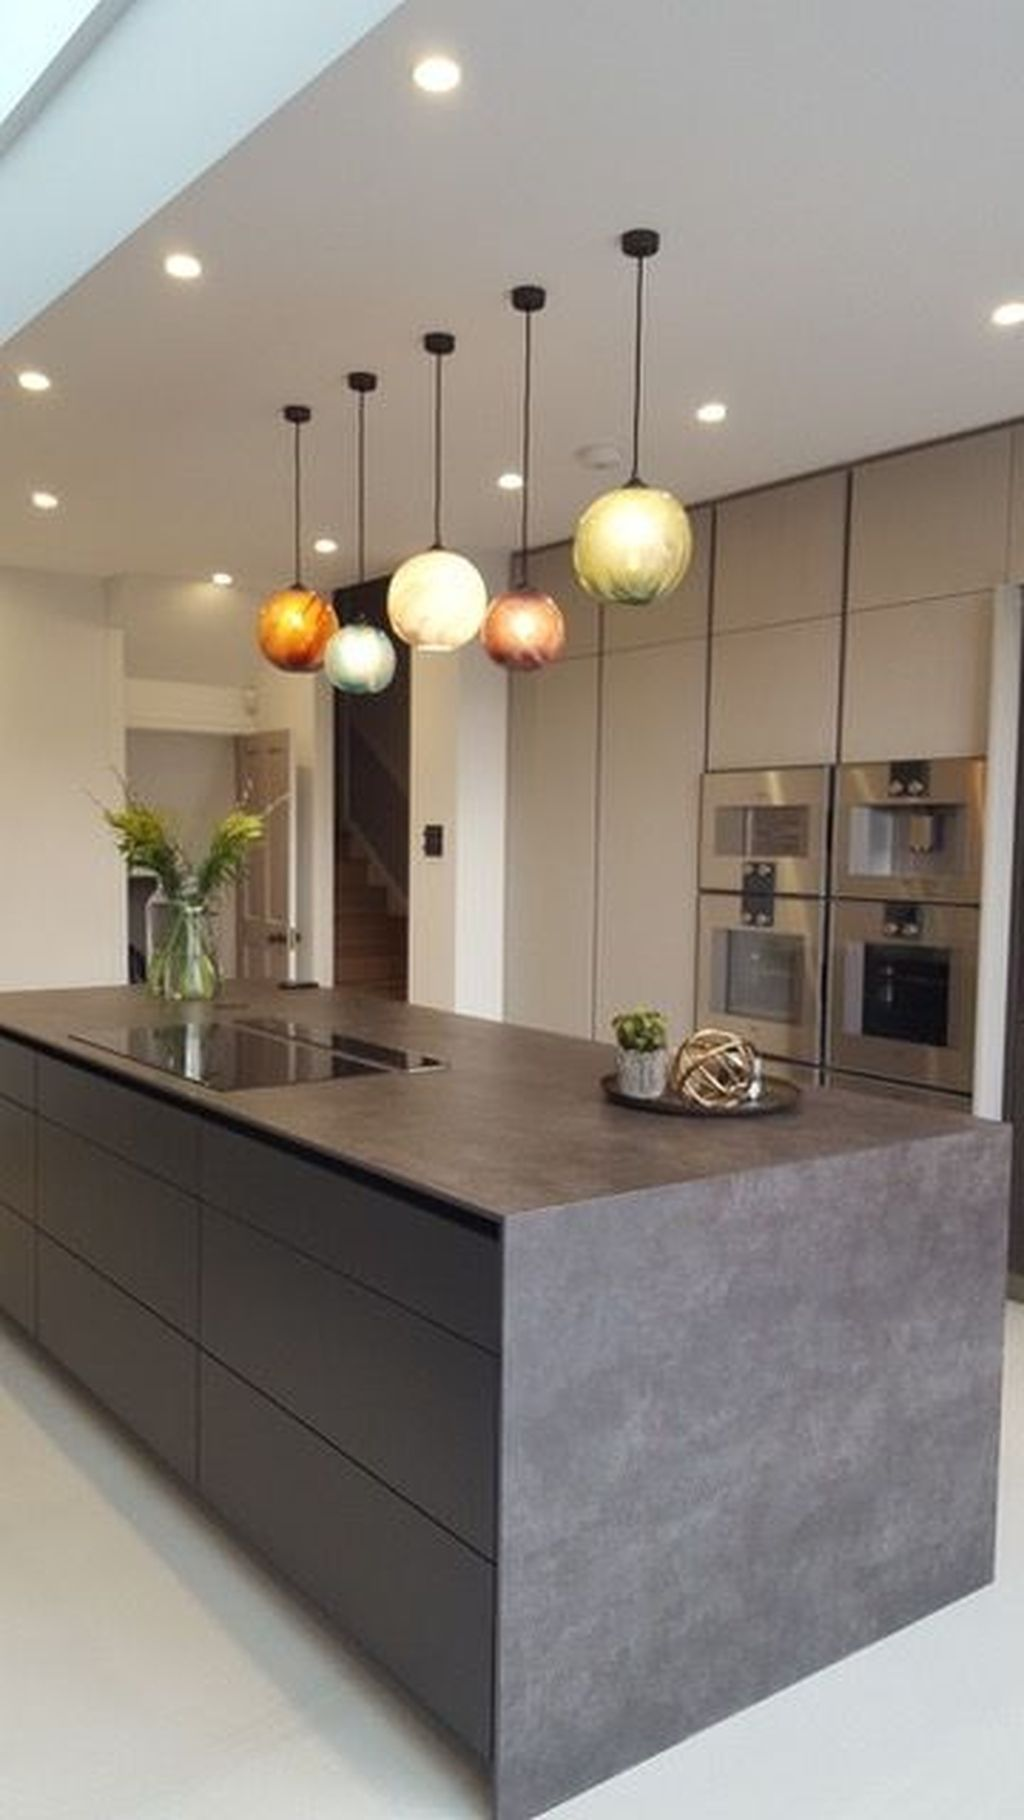 36 Cool Kitchen Design Ideas With